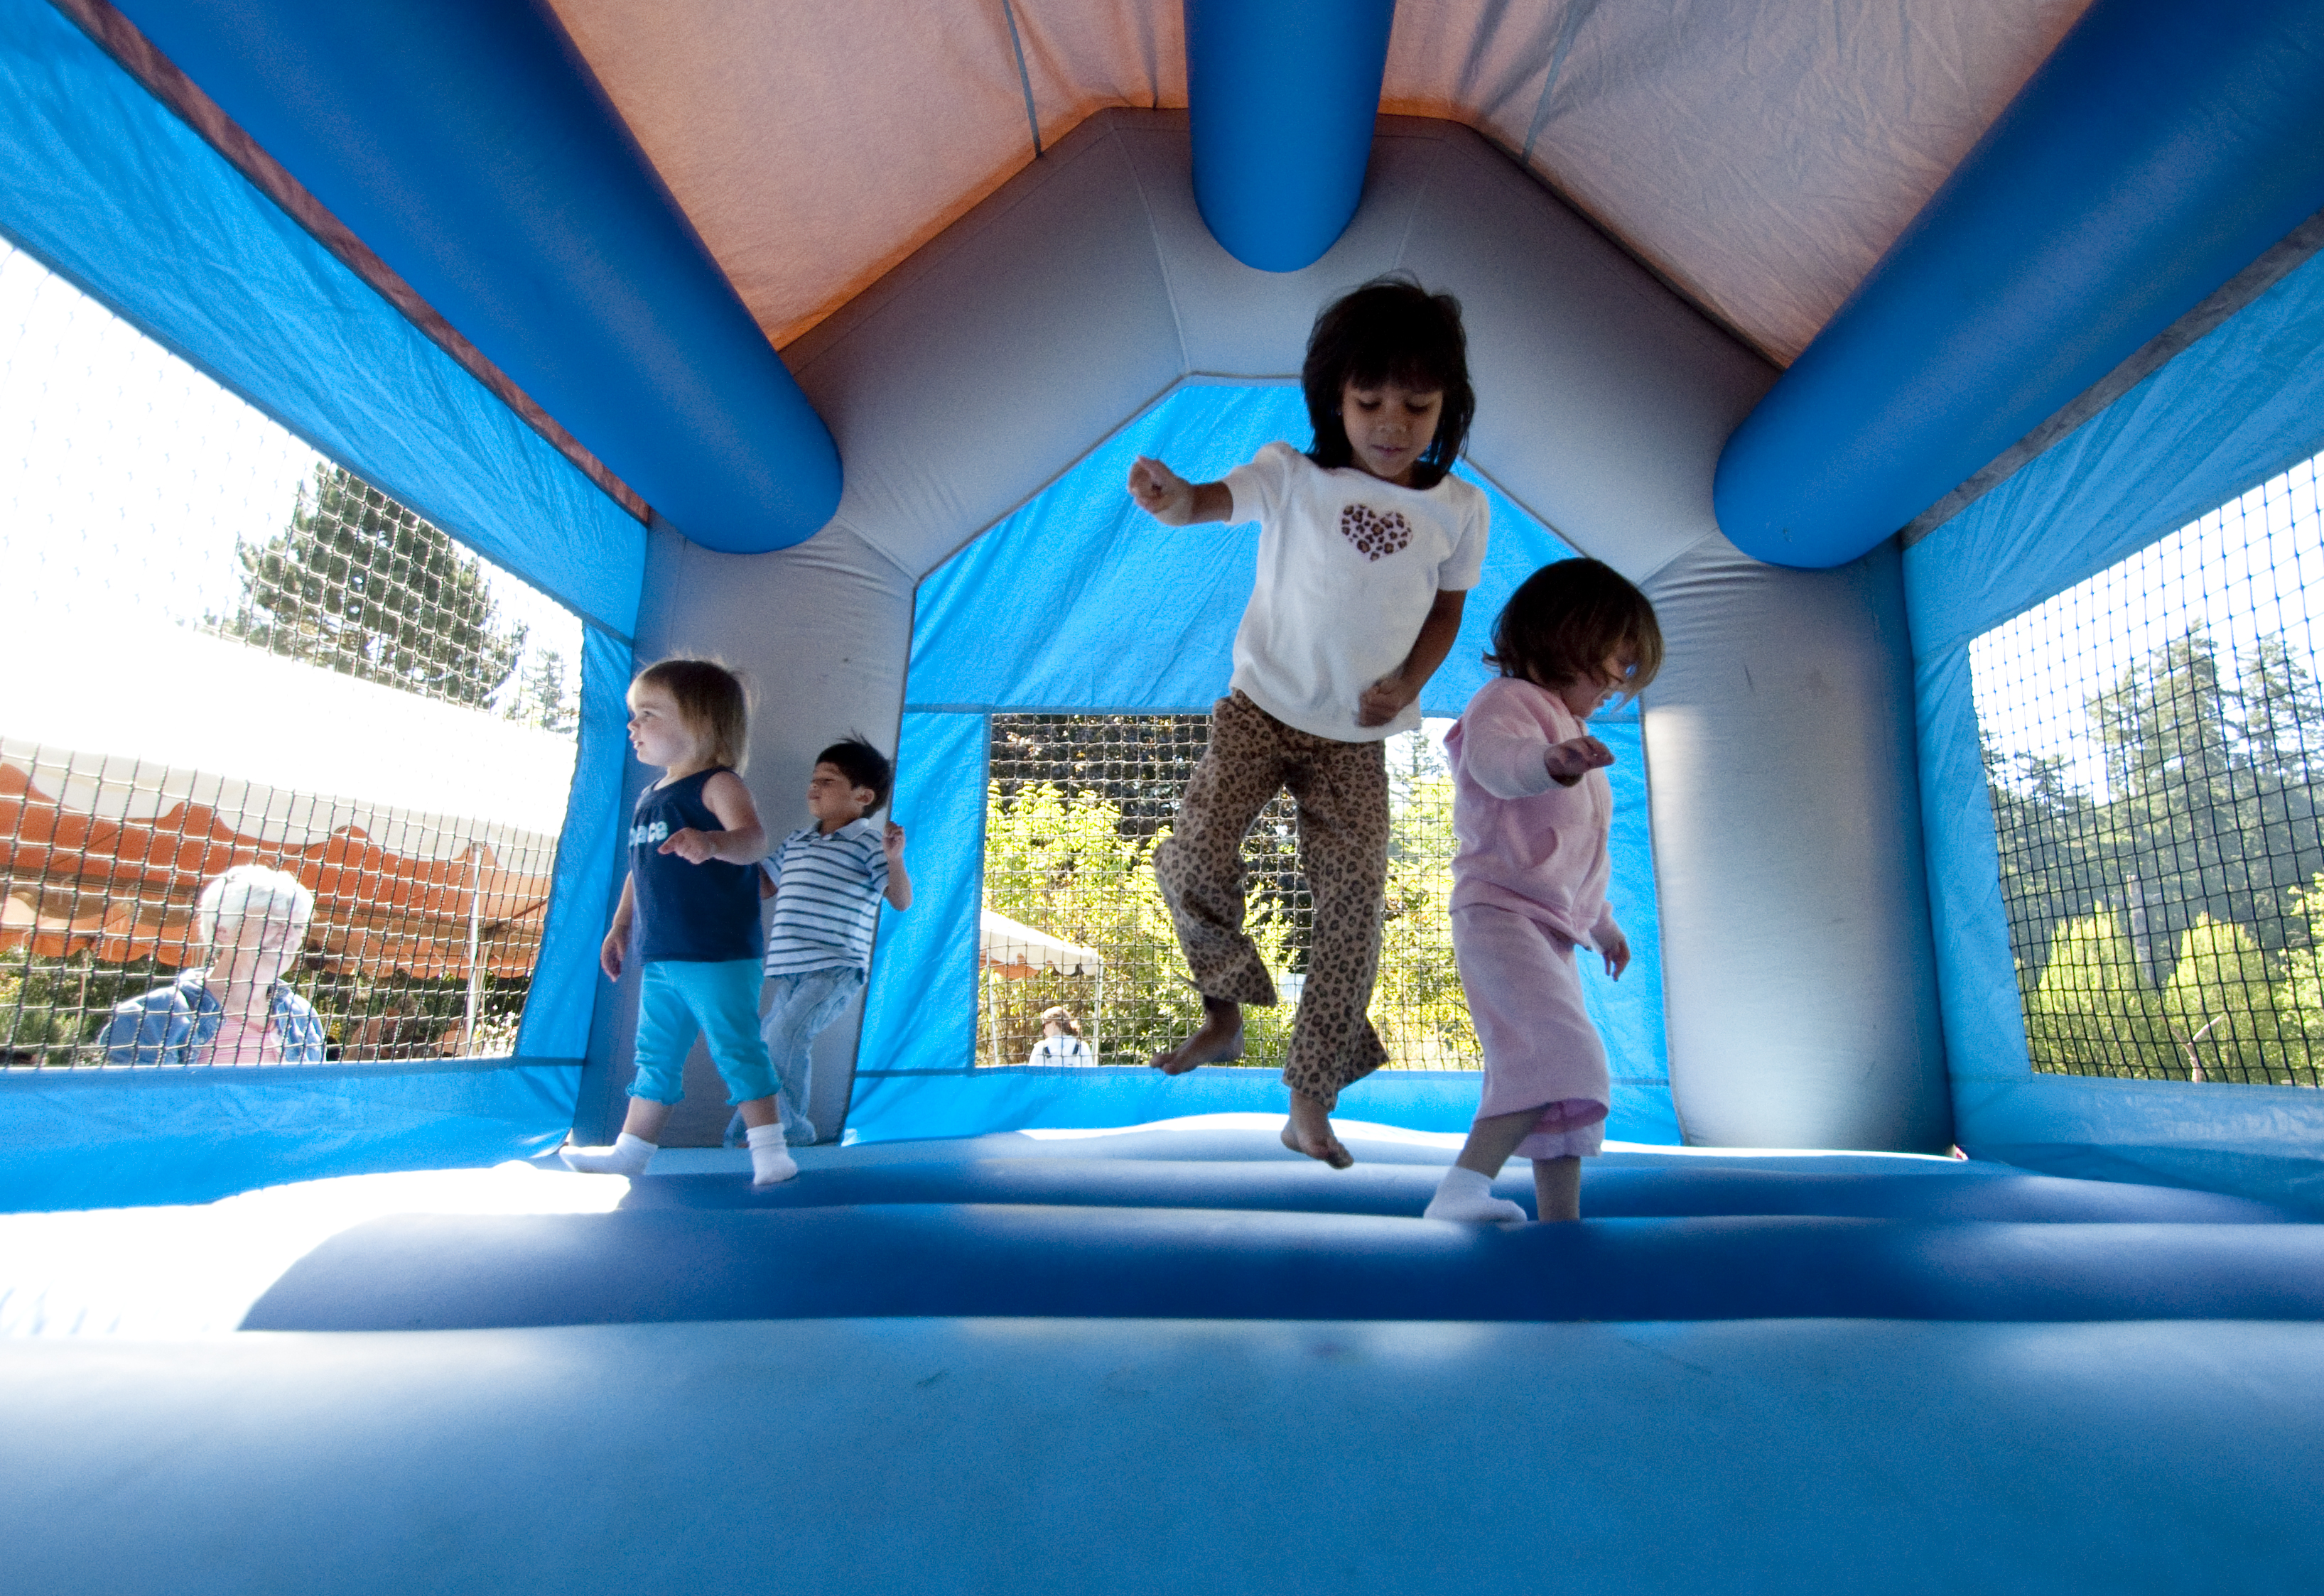 Synaptic Development Activities To Do With Kids